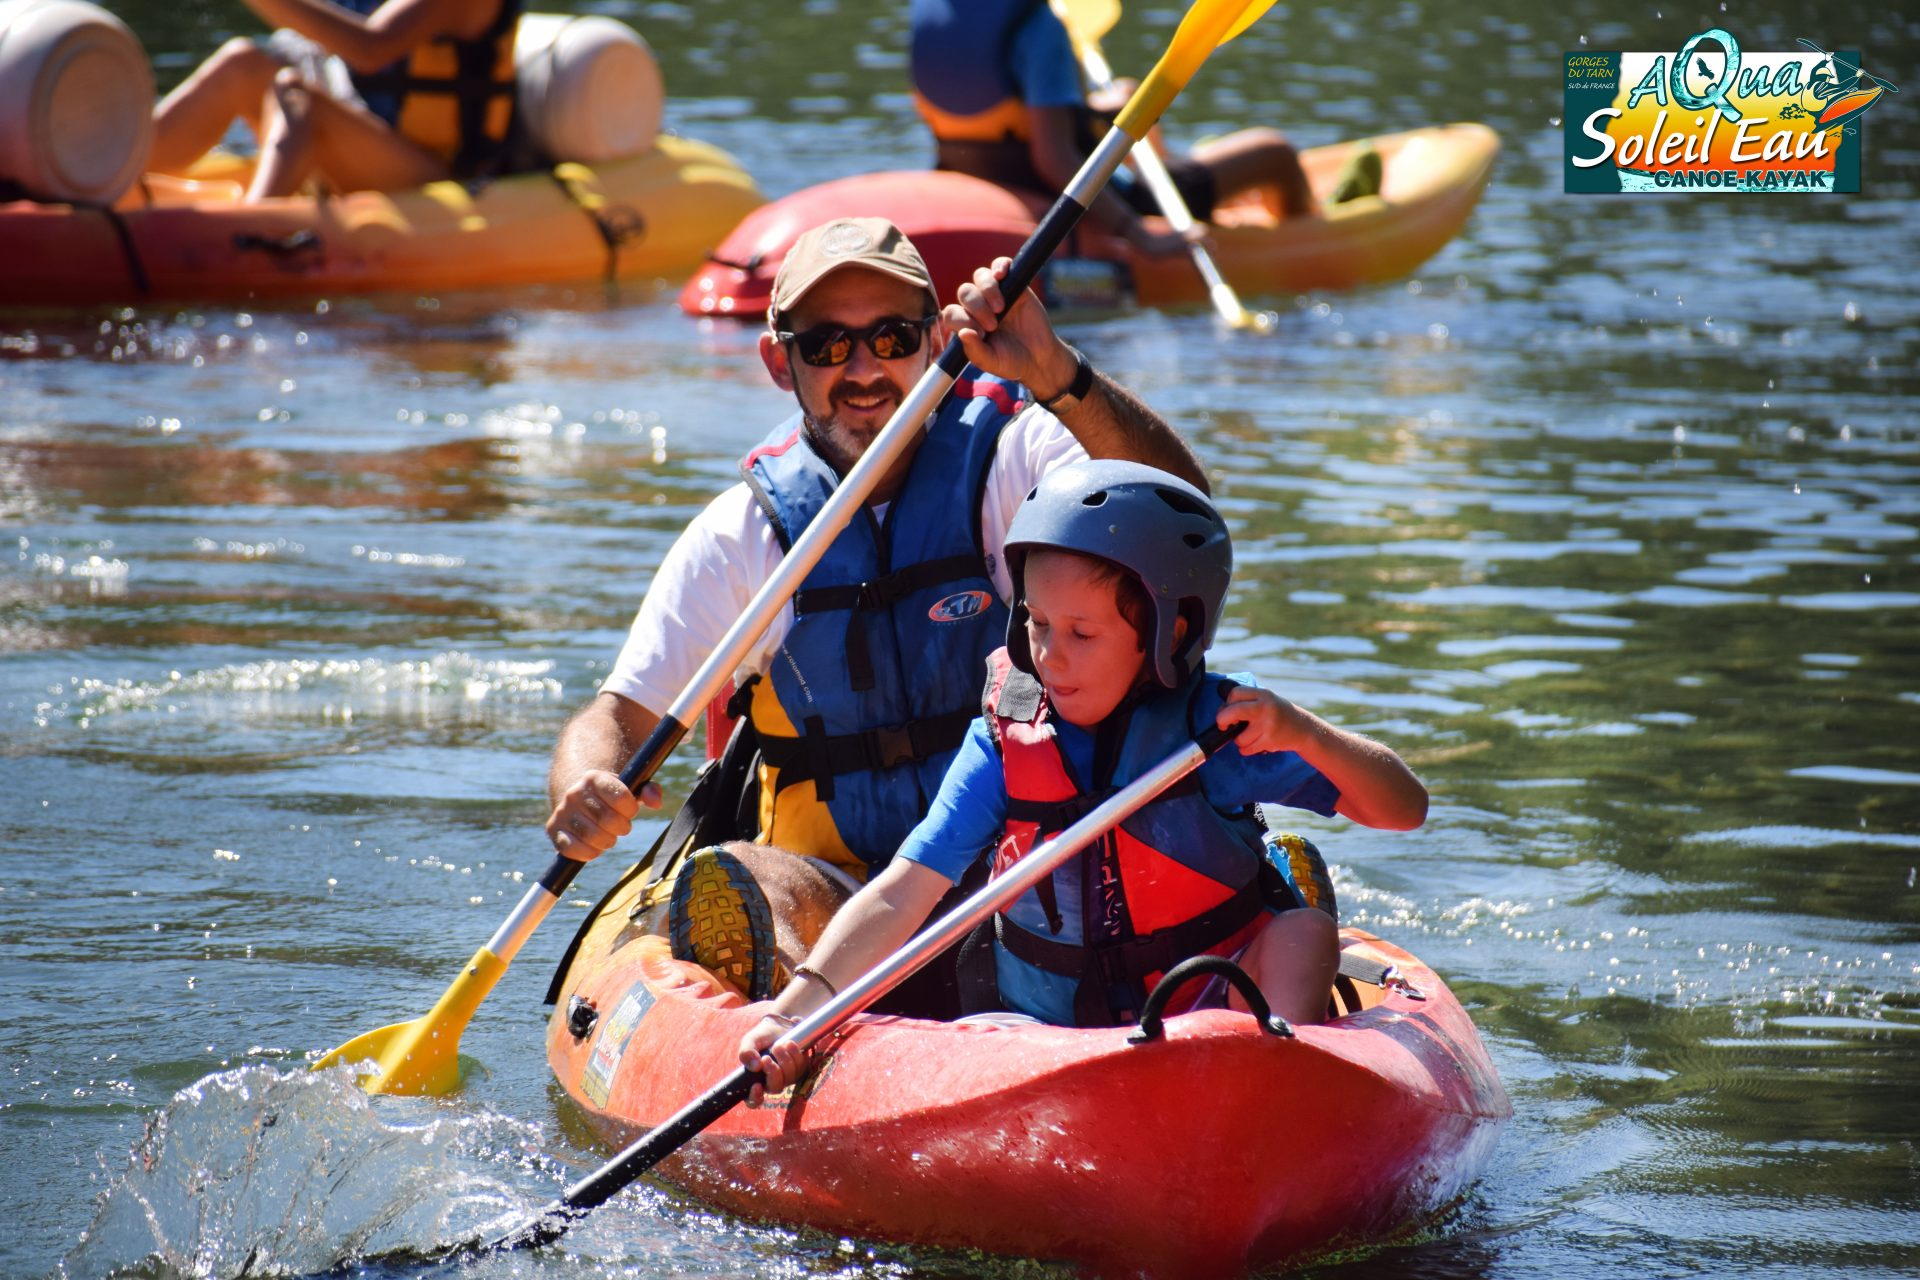 canoe in familly Tarn Gorges activities, leisure familly outing with children